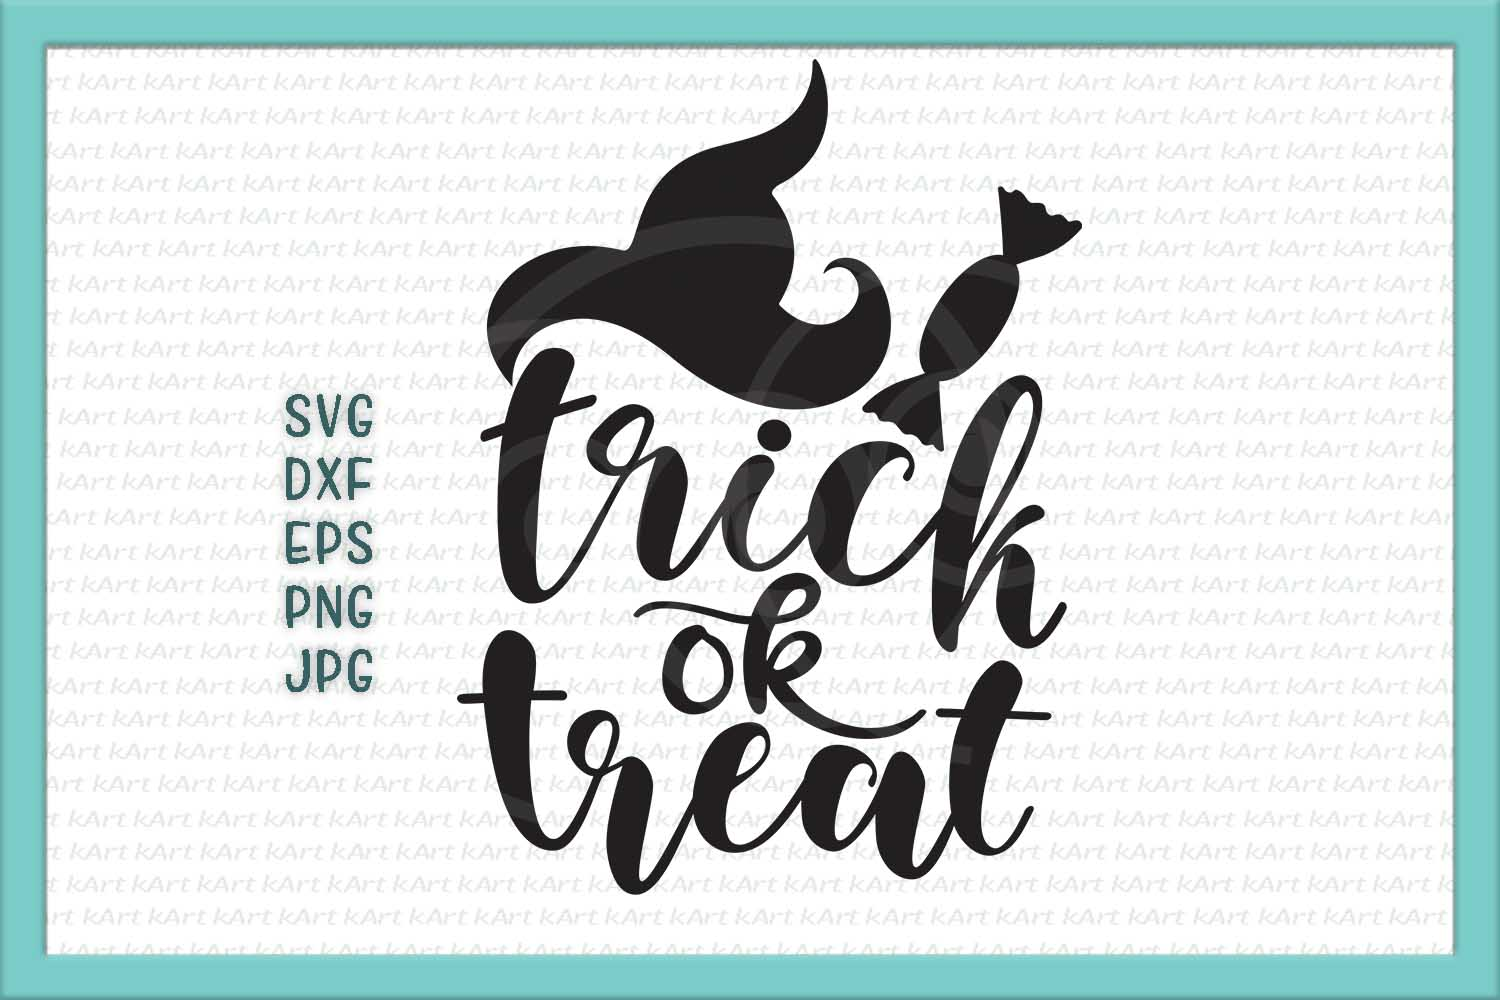 trick or treat svg, Halloween Svg files, Svg cut files, Spooky Svg, Fall svg, witch hat svg, Svg commercial use, Cute svg, Handlettered svg example image 2